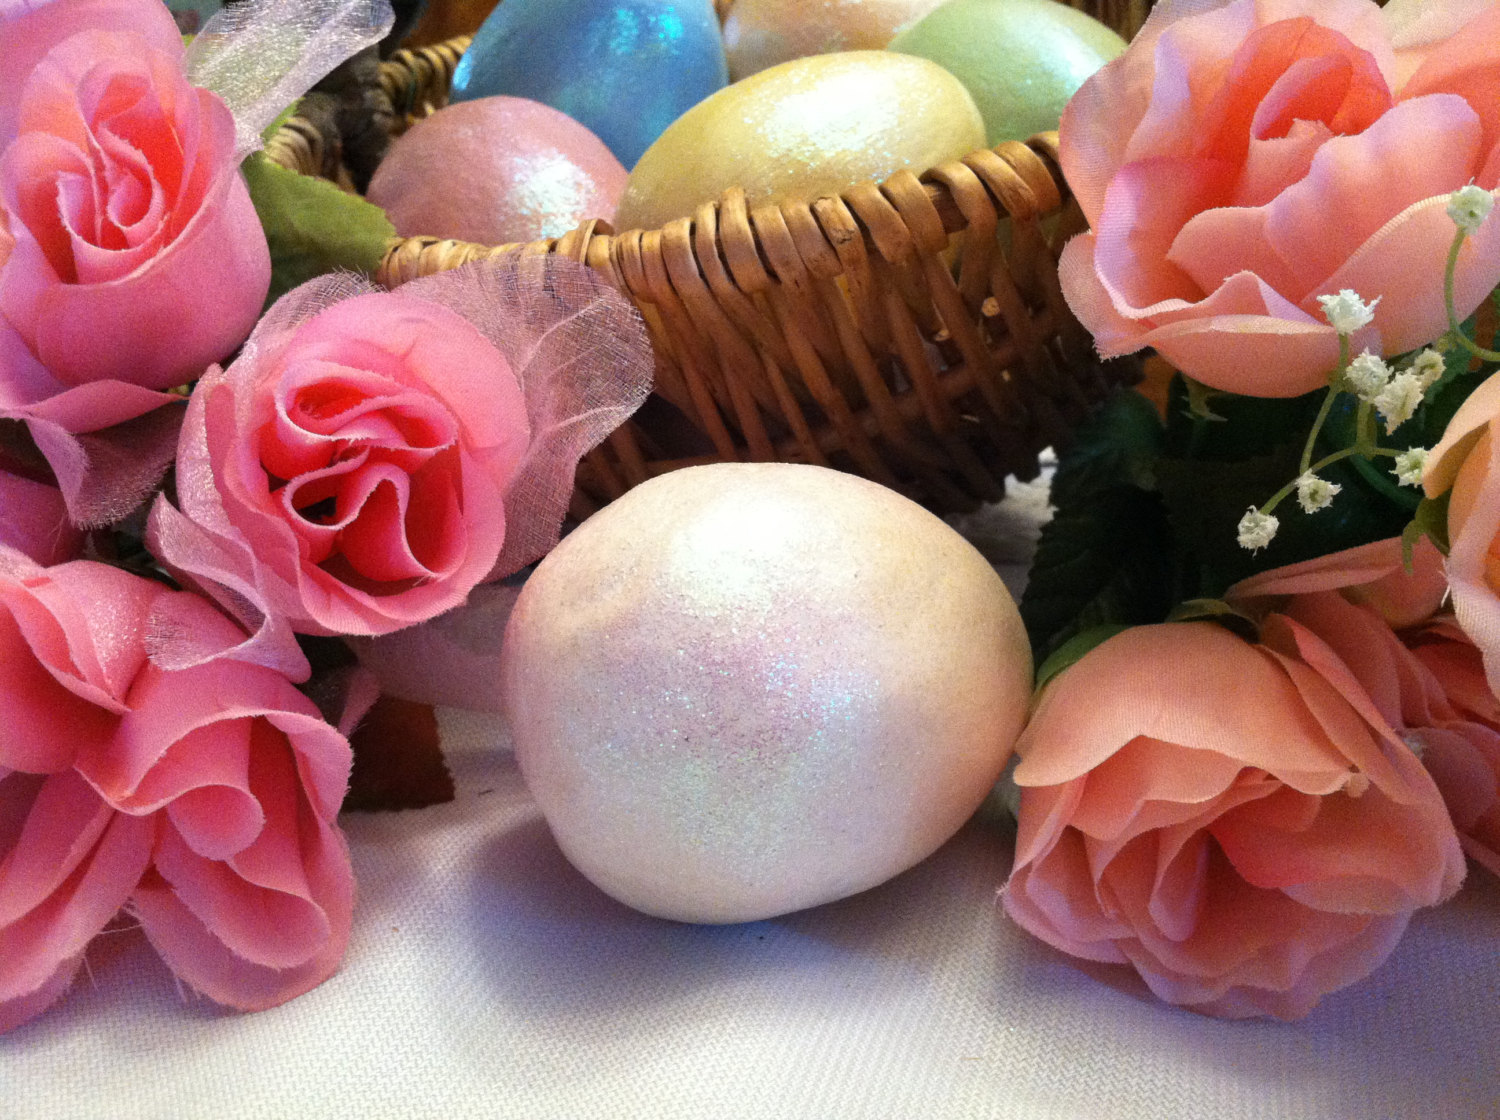 Ceramic Creamy White Colored Egg for Easter Display - glitter glazed and with ra